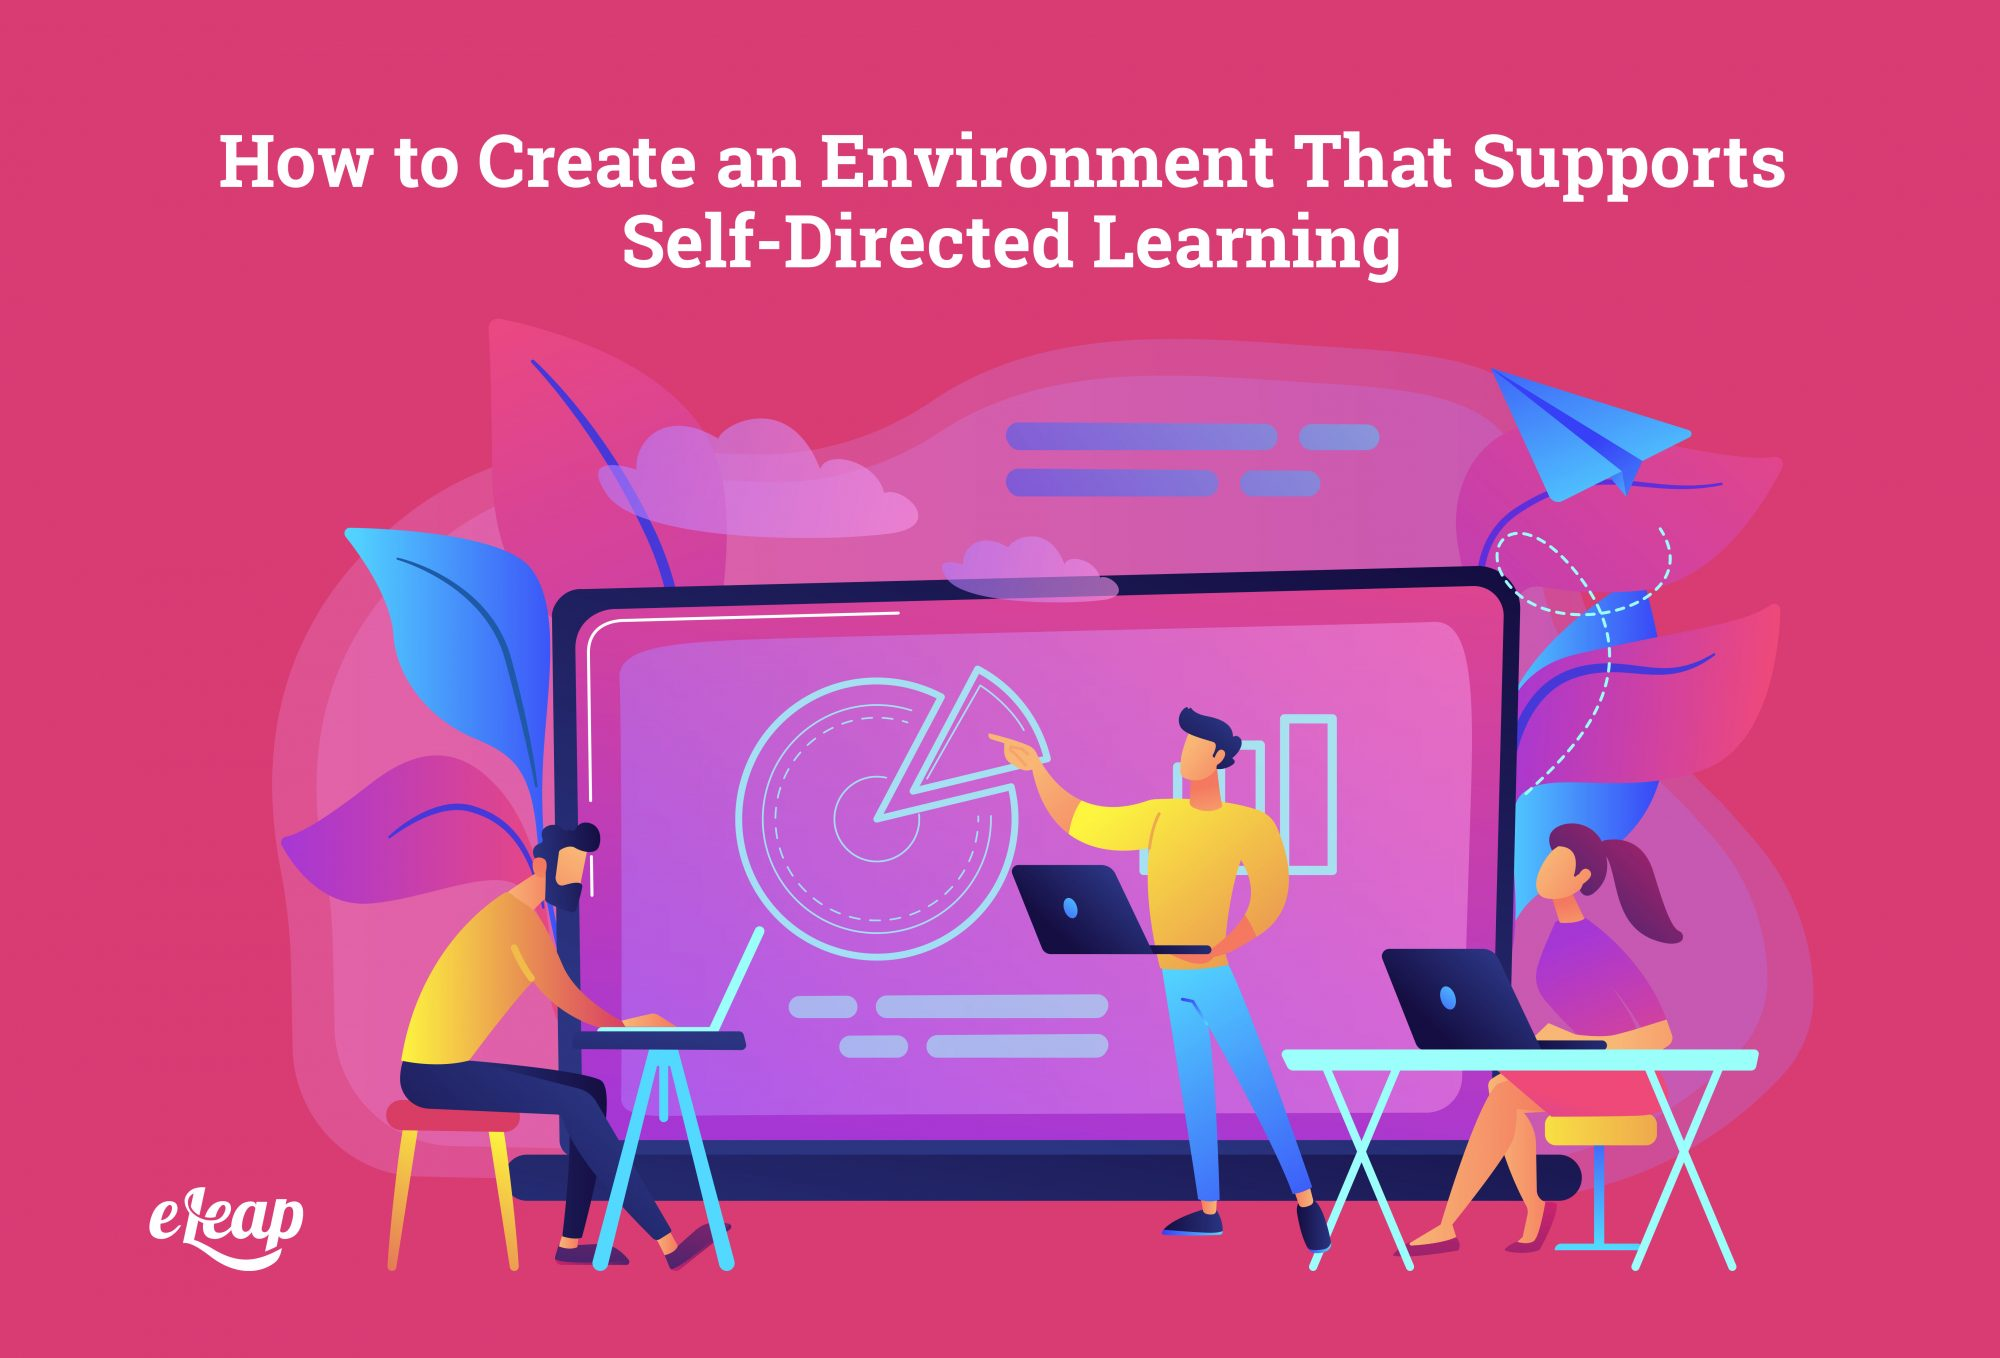 How to Create an Environment That Supports Self-Directed Learning